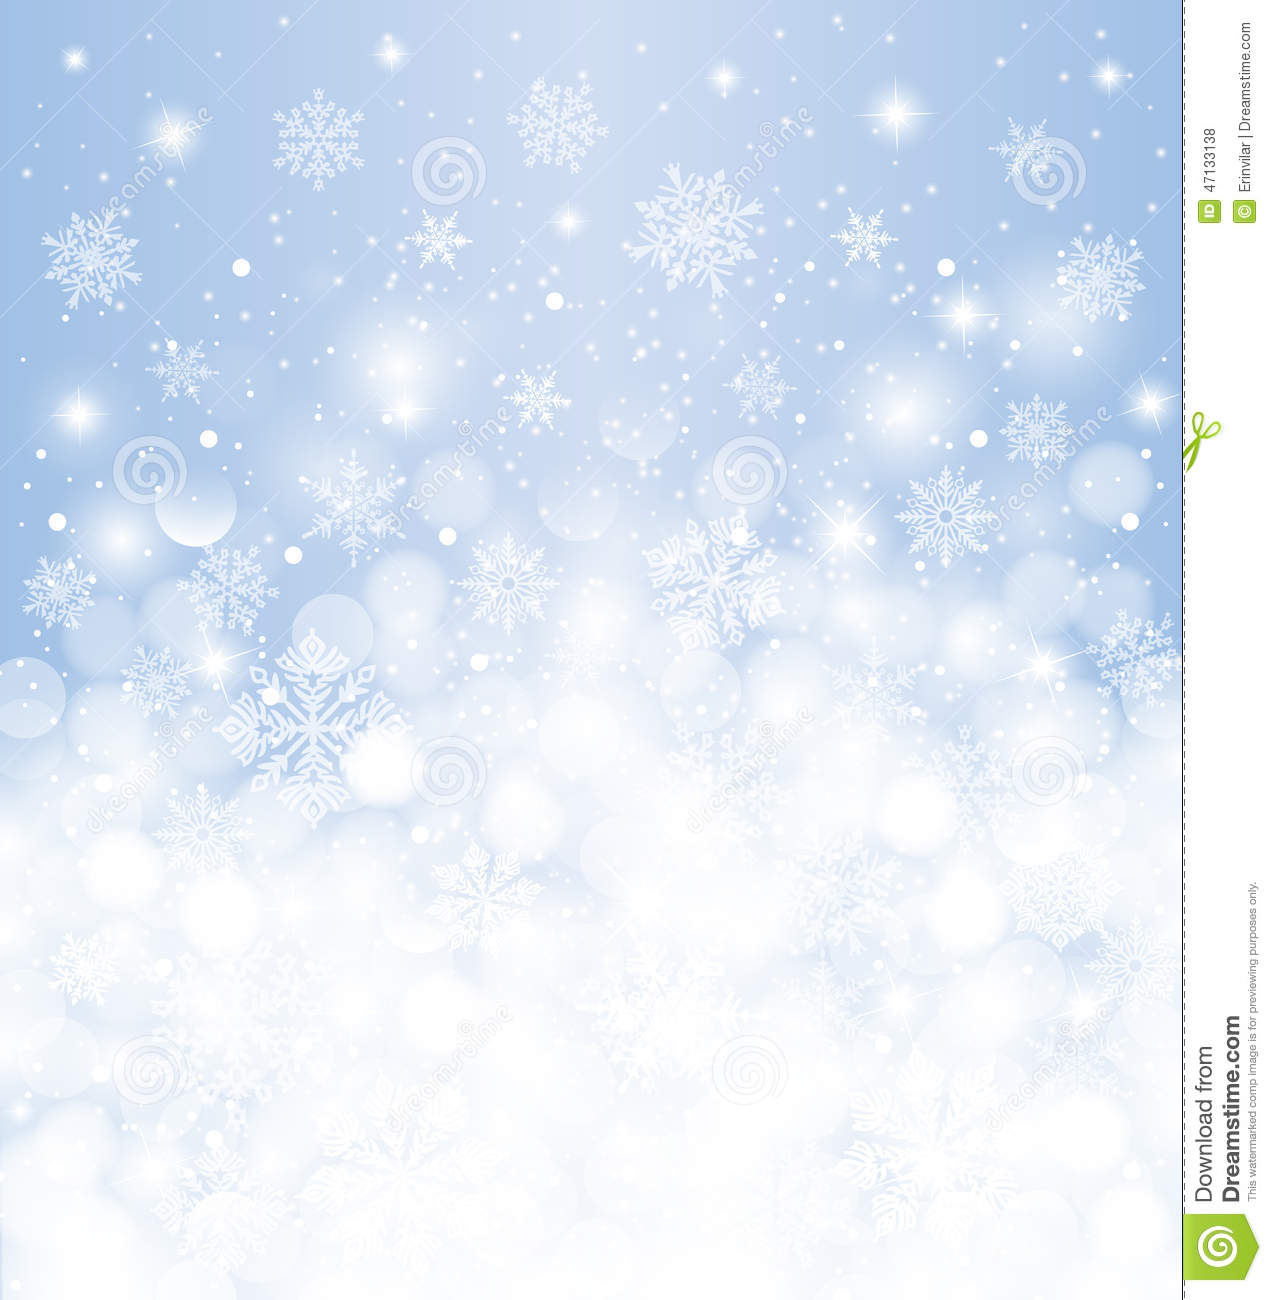 With white christmas background and snow vector vector background - Winter Background Blurred White Amp Blue With Snowfall And